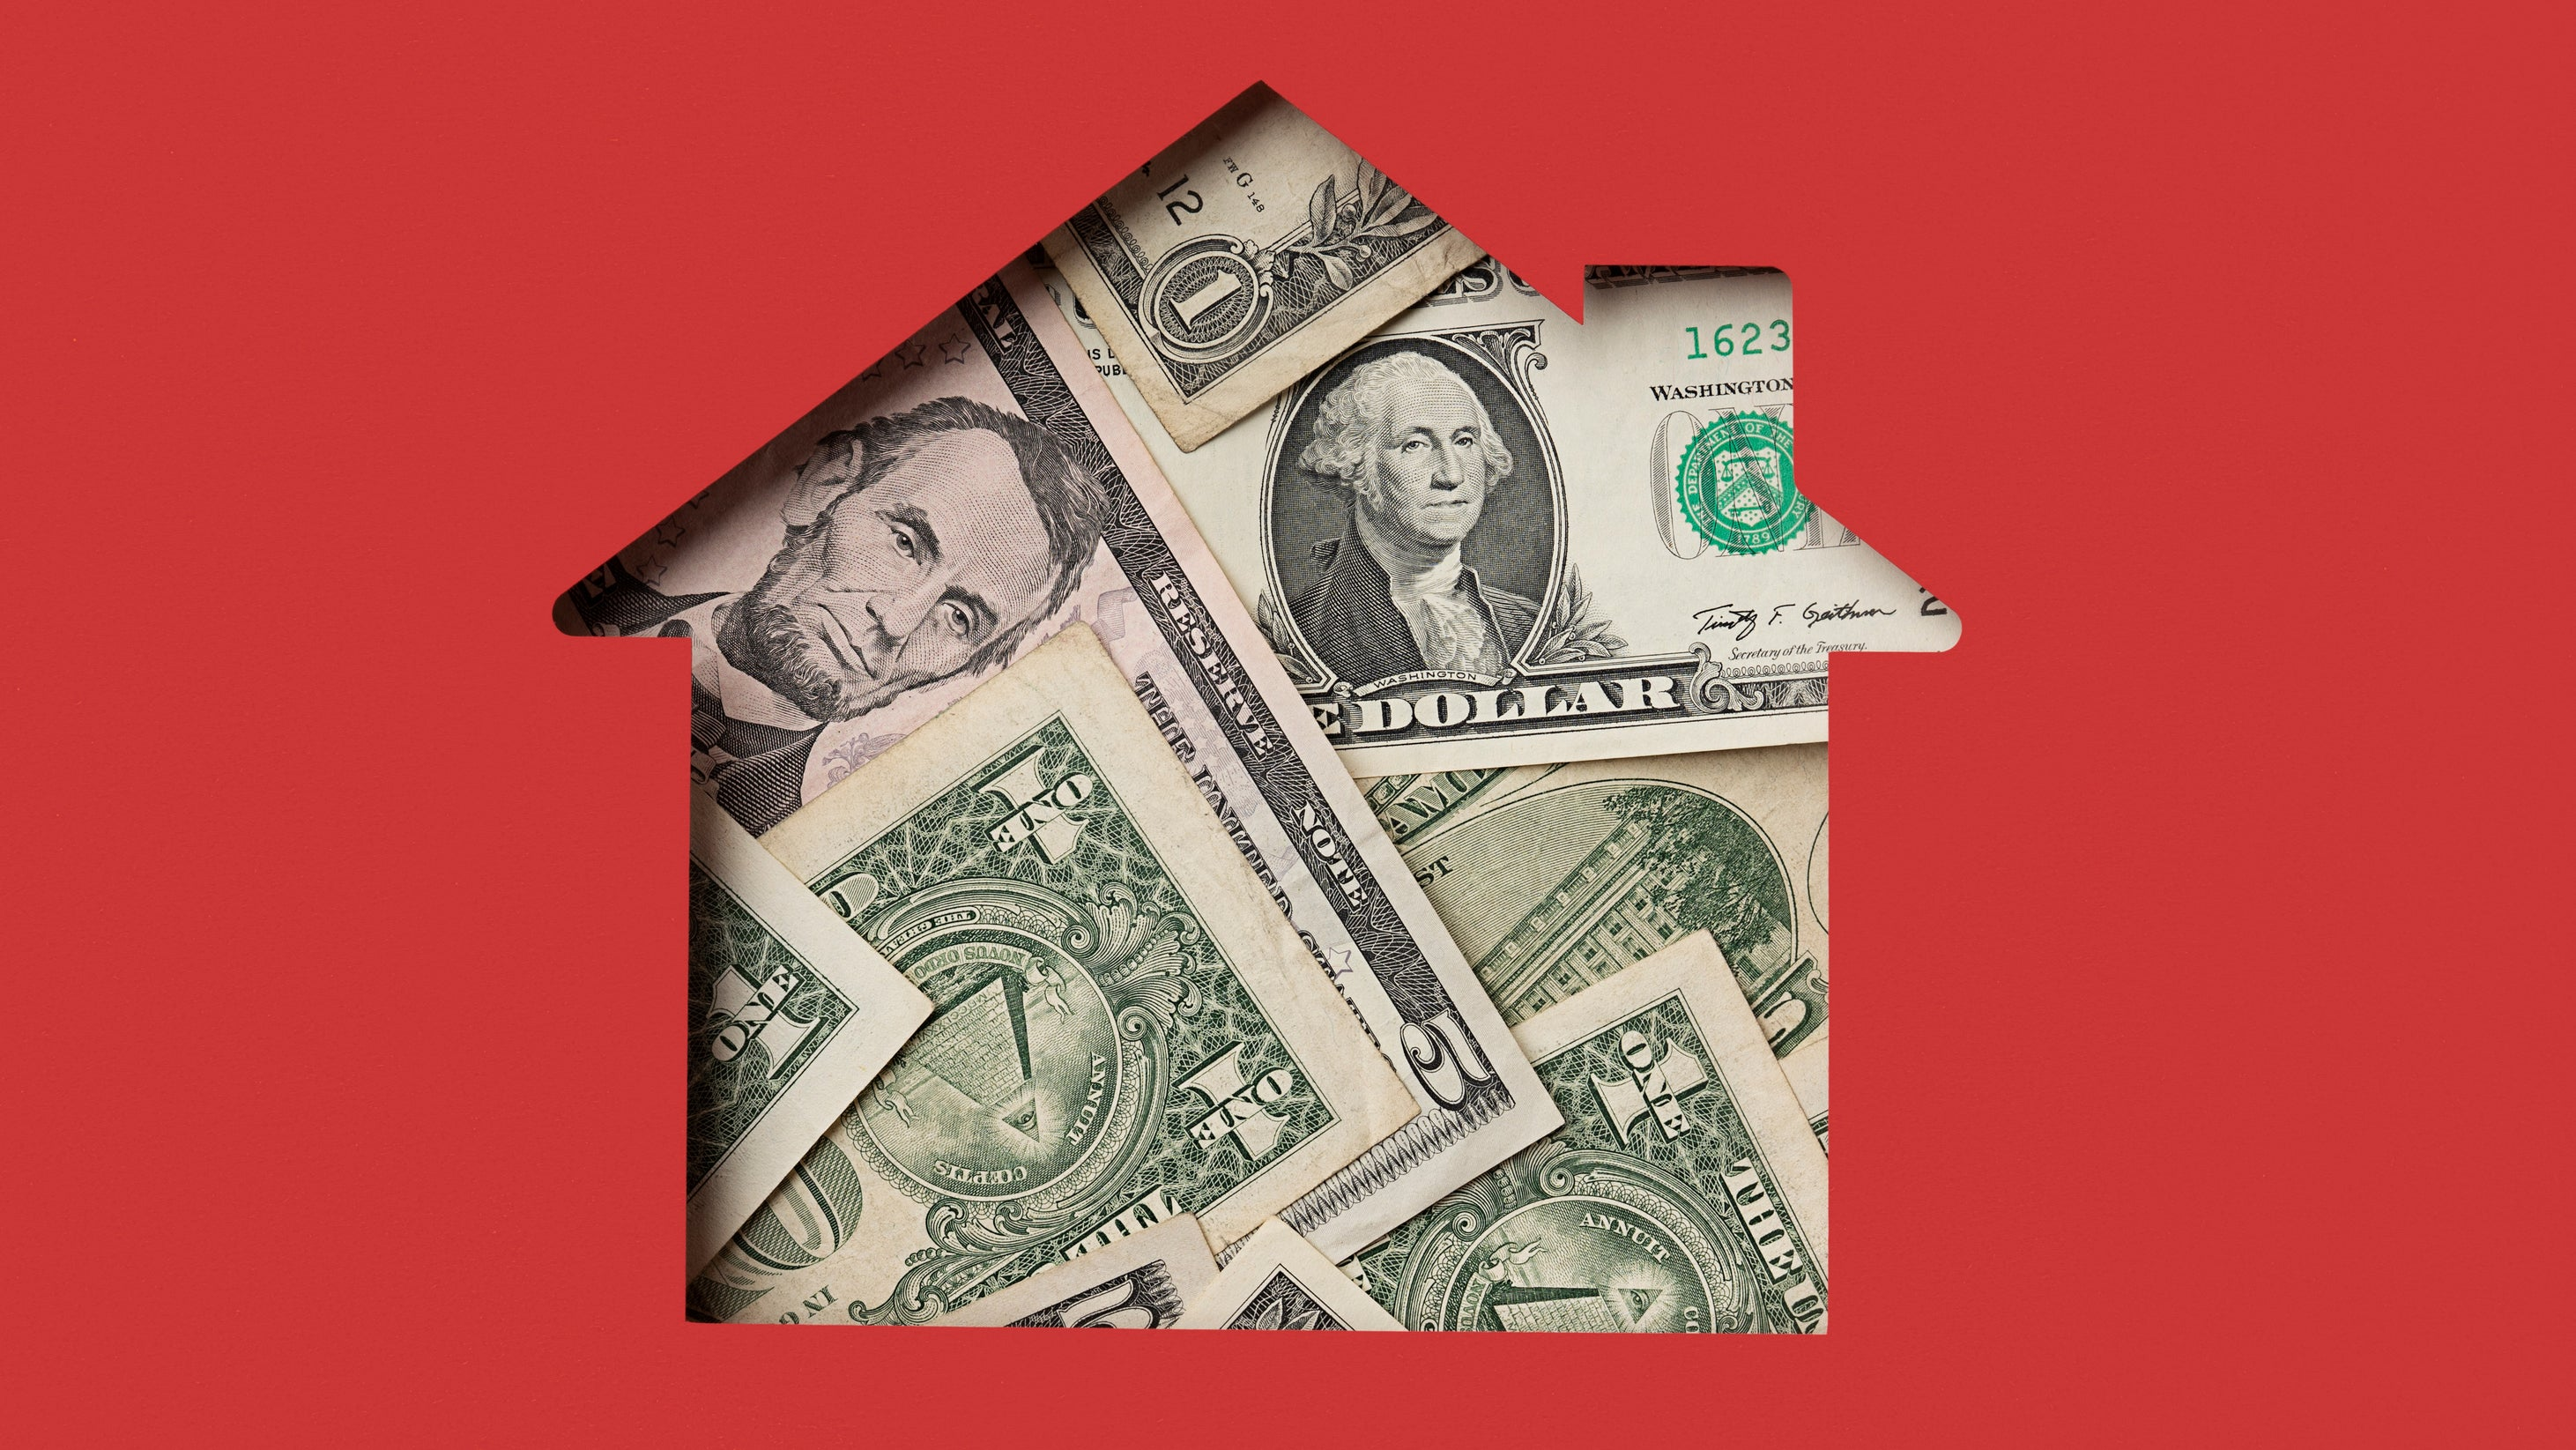 <p>A house made of dollar bills on a red background</p>